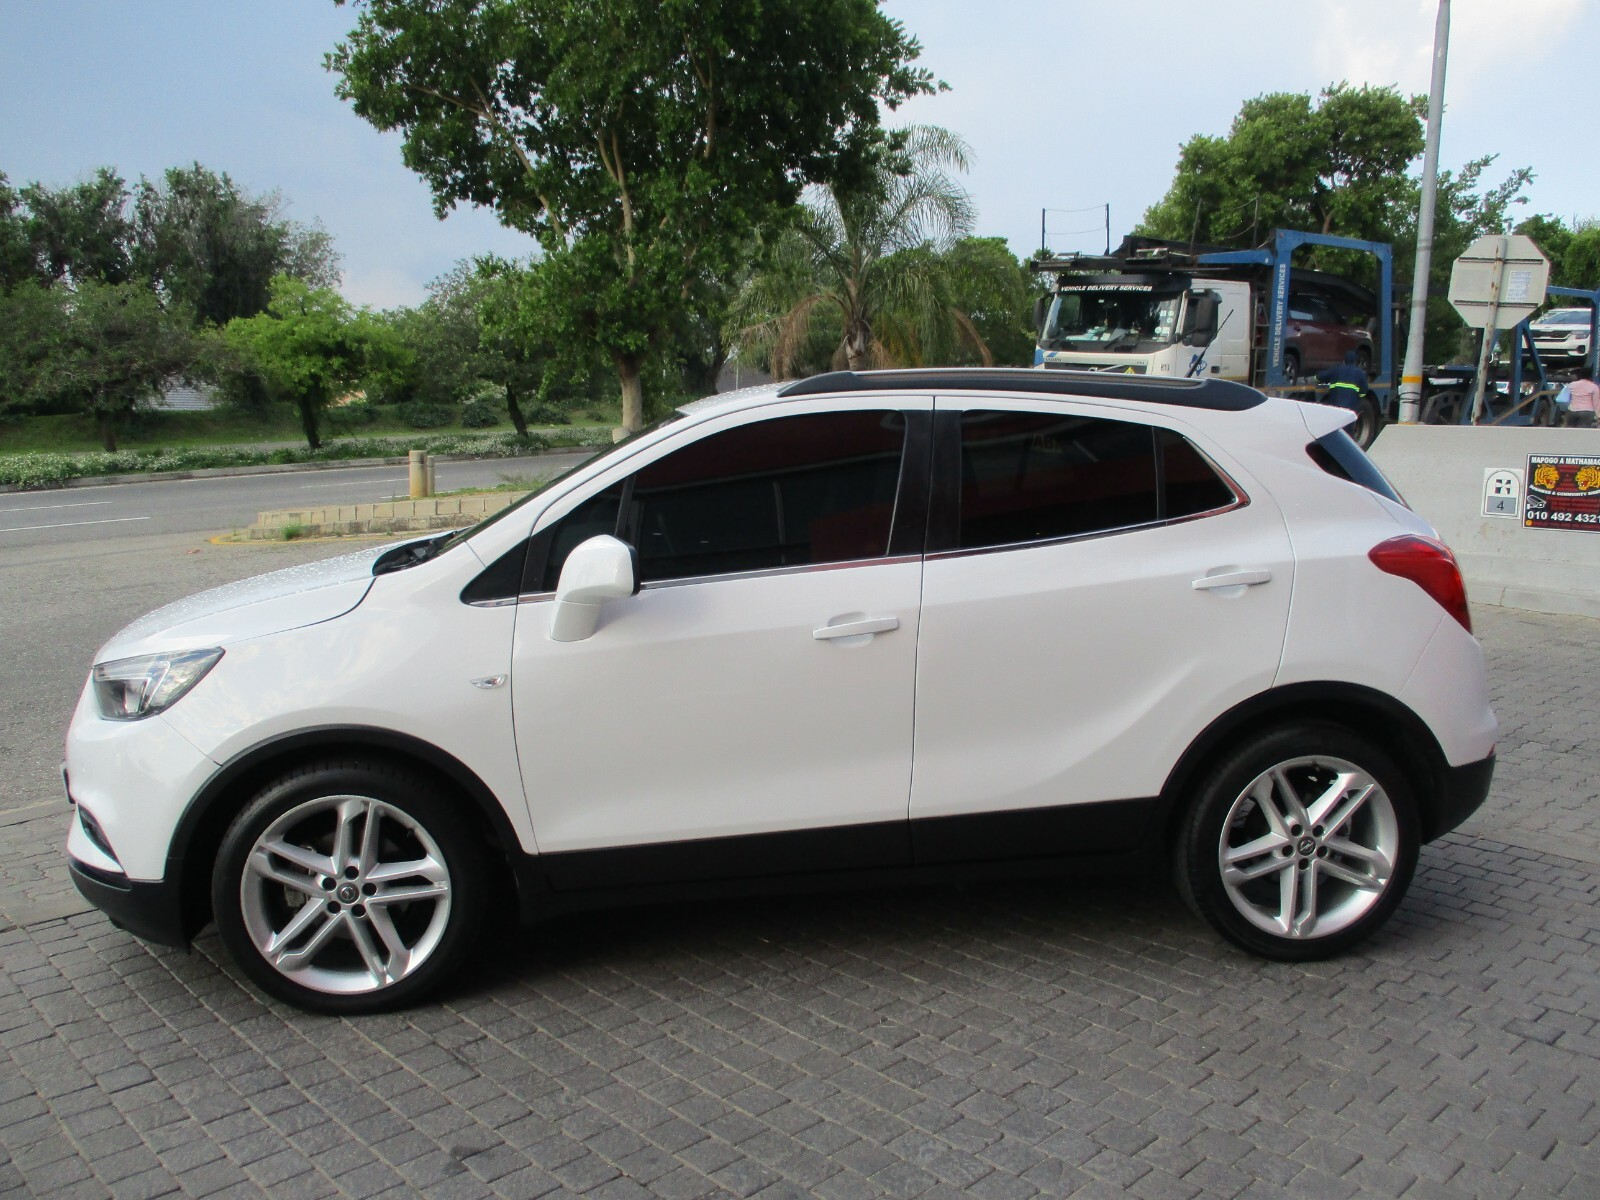 OPEL / X 1.4T COSMO A/T Sandton 3326788